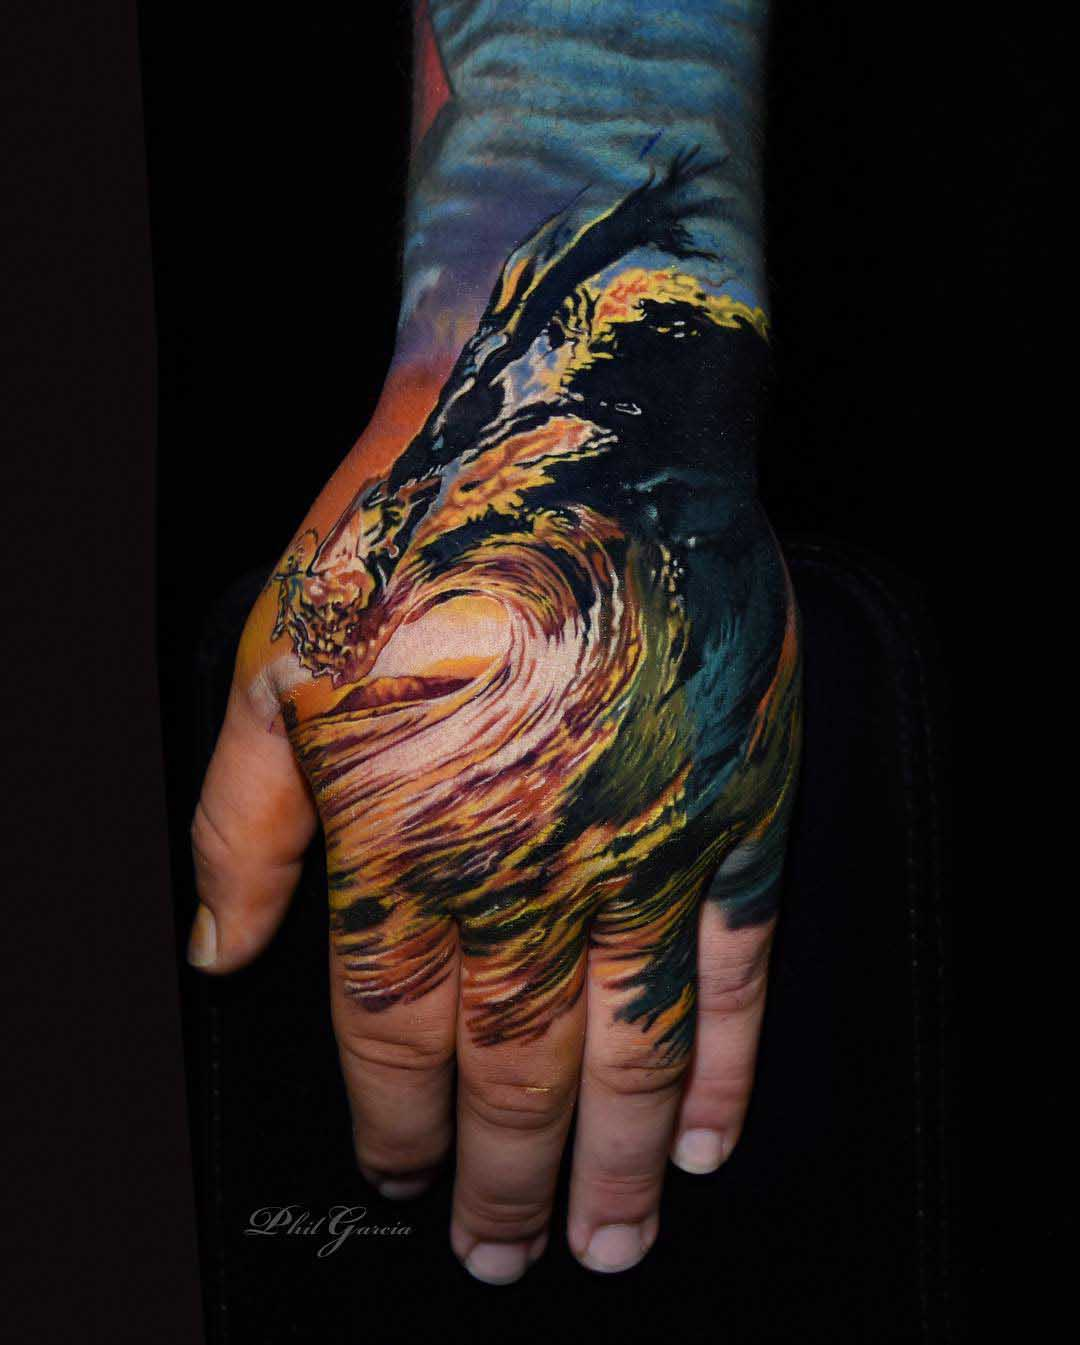 hand tattoo ocean wave